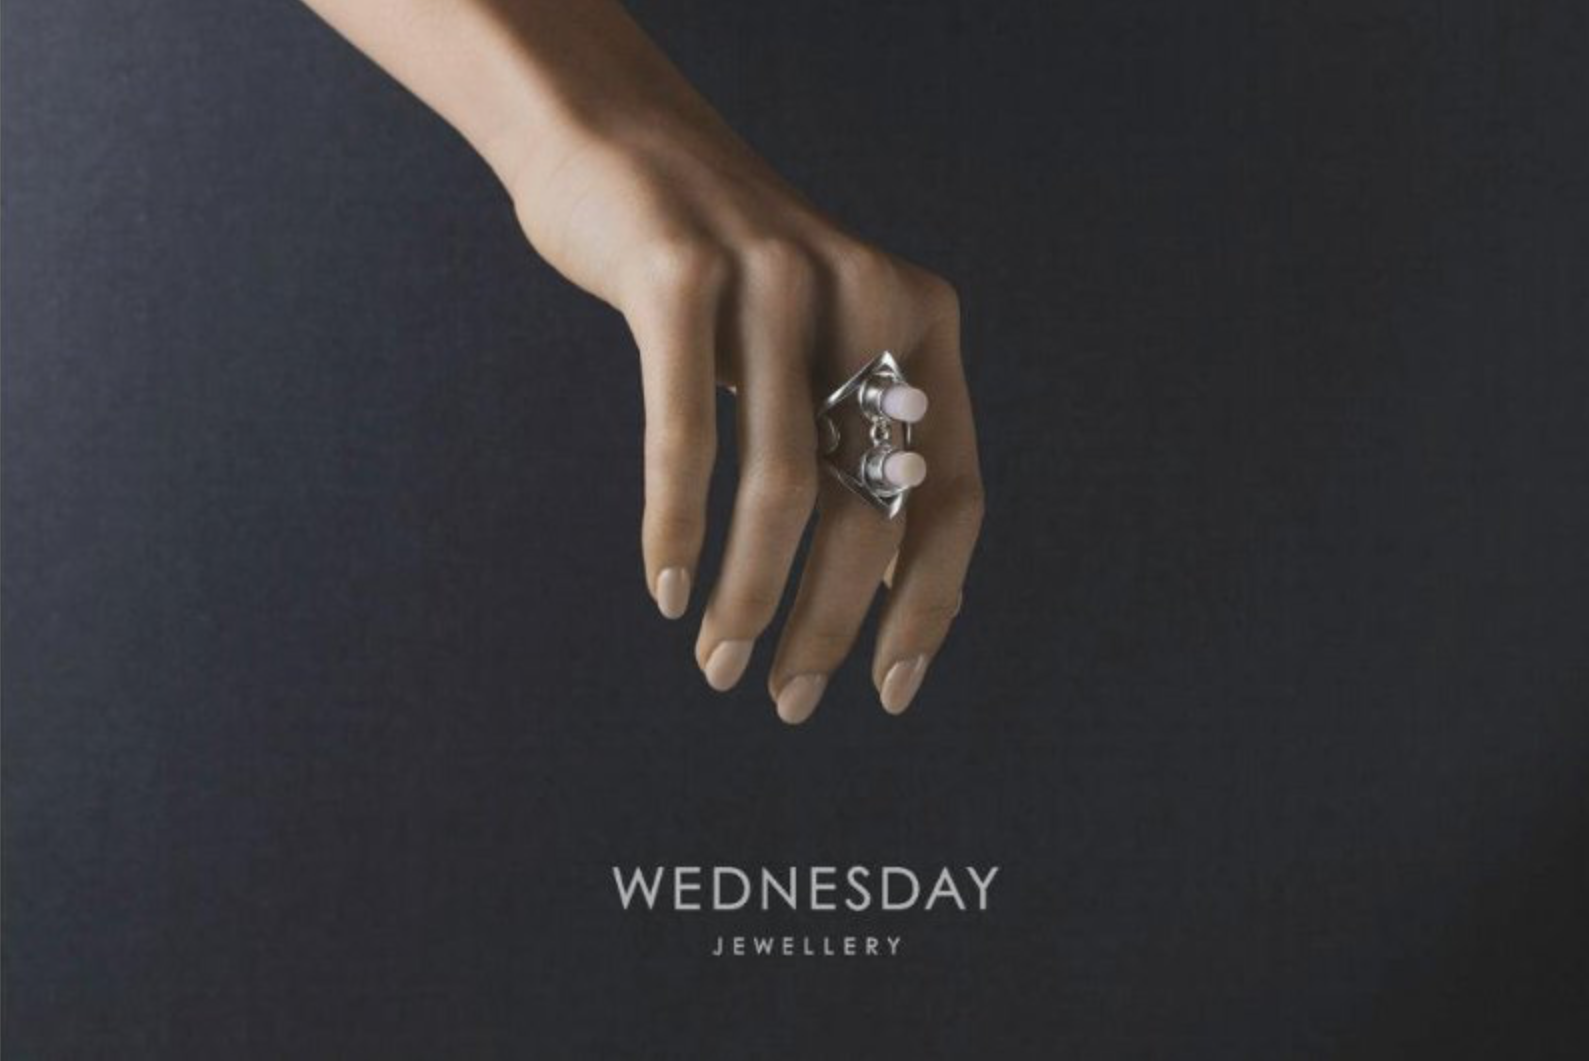 WEDNESDAY JEWELLERY BRAND LAUNCH: ECOMMERCE PHOTOGRAPHY